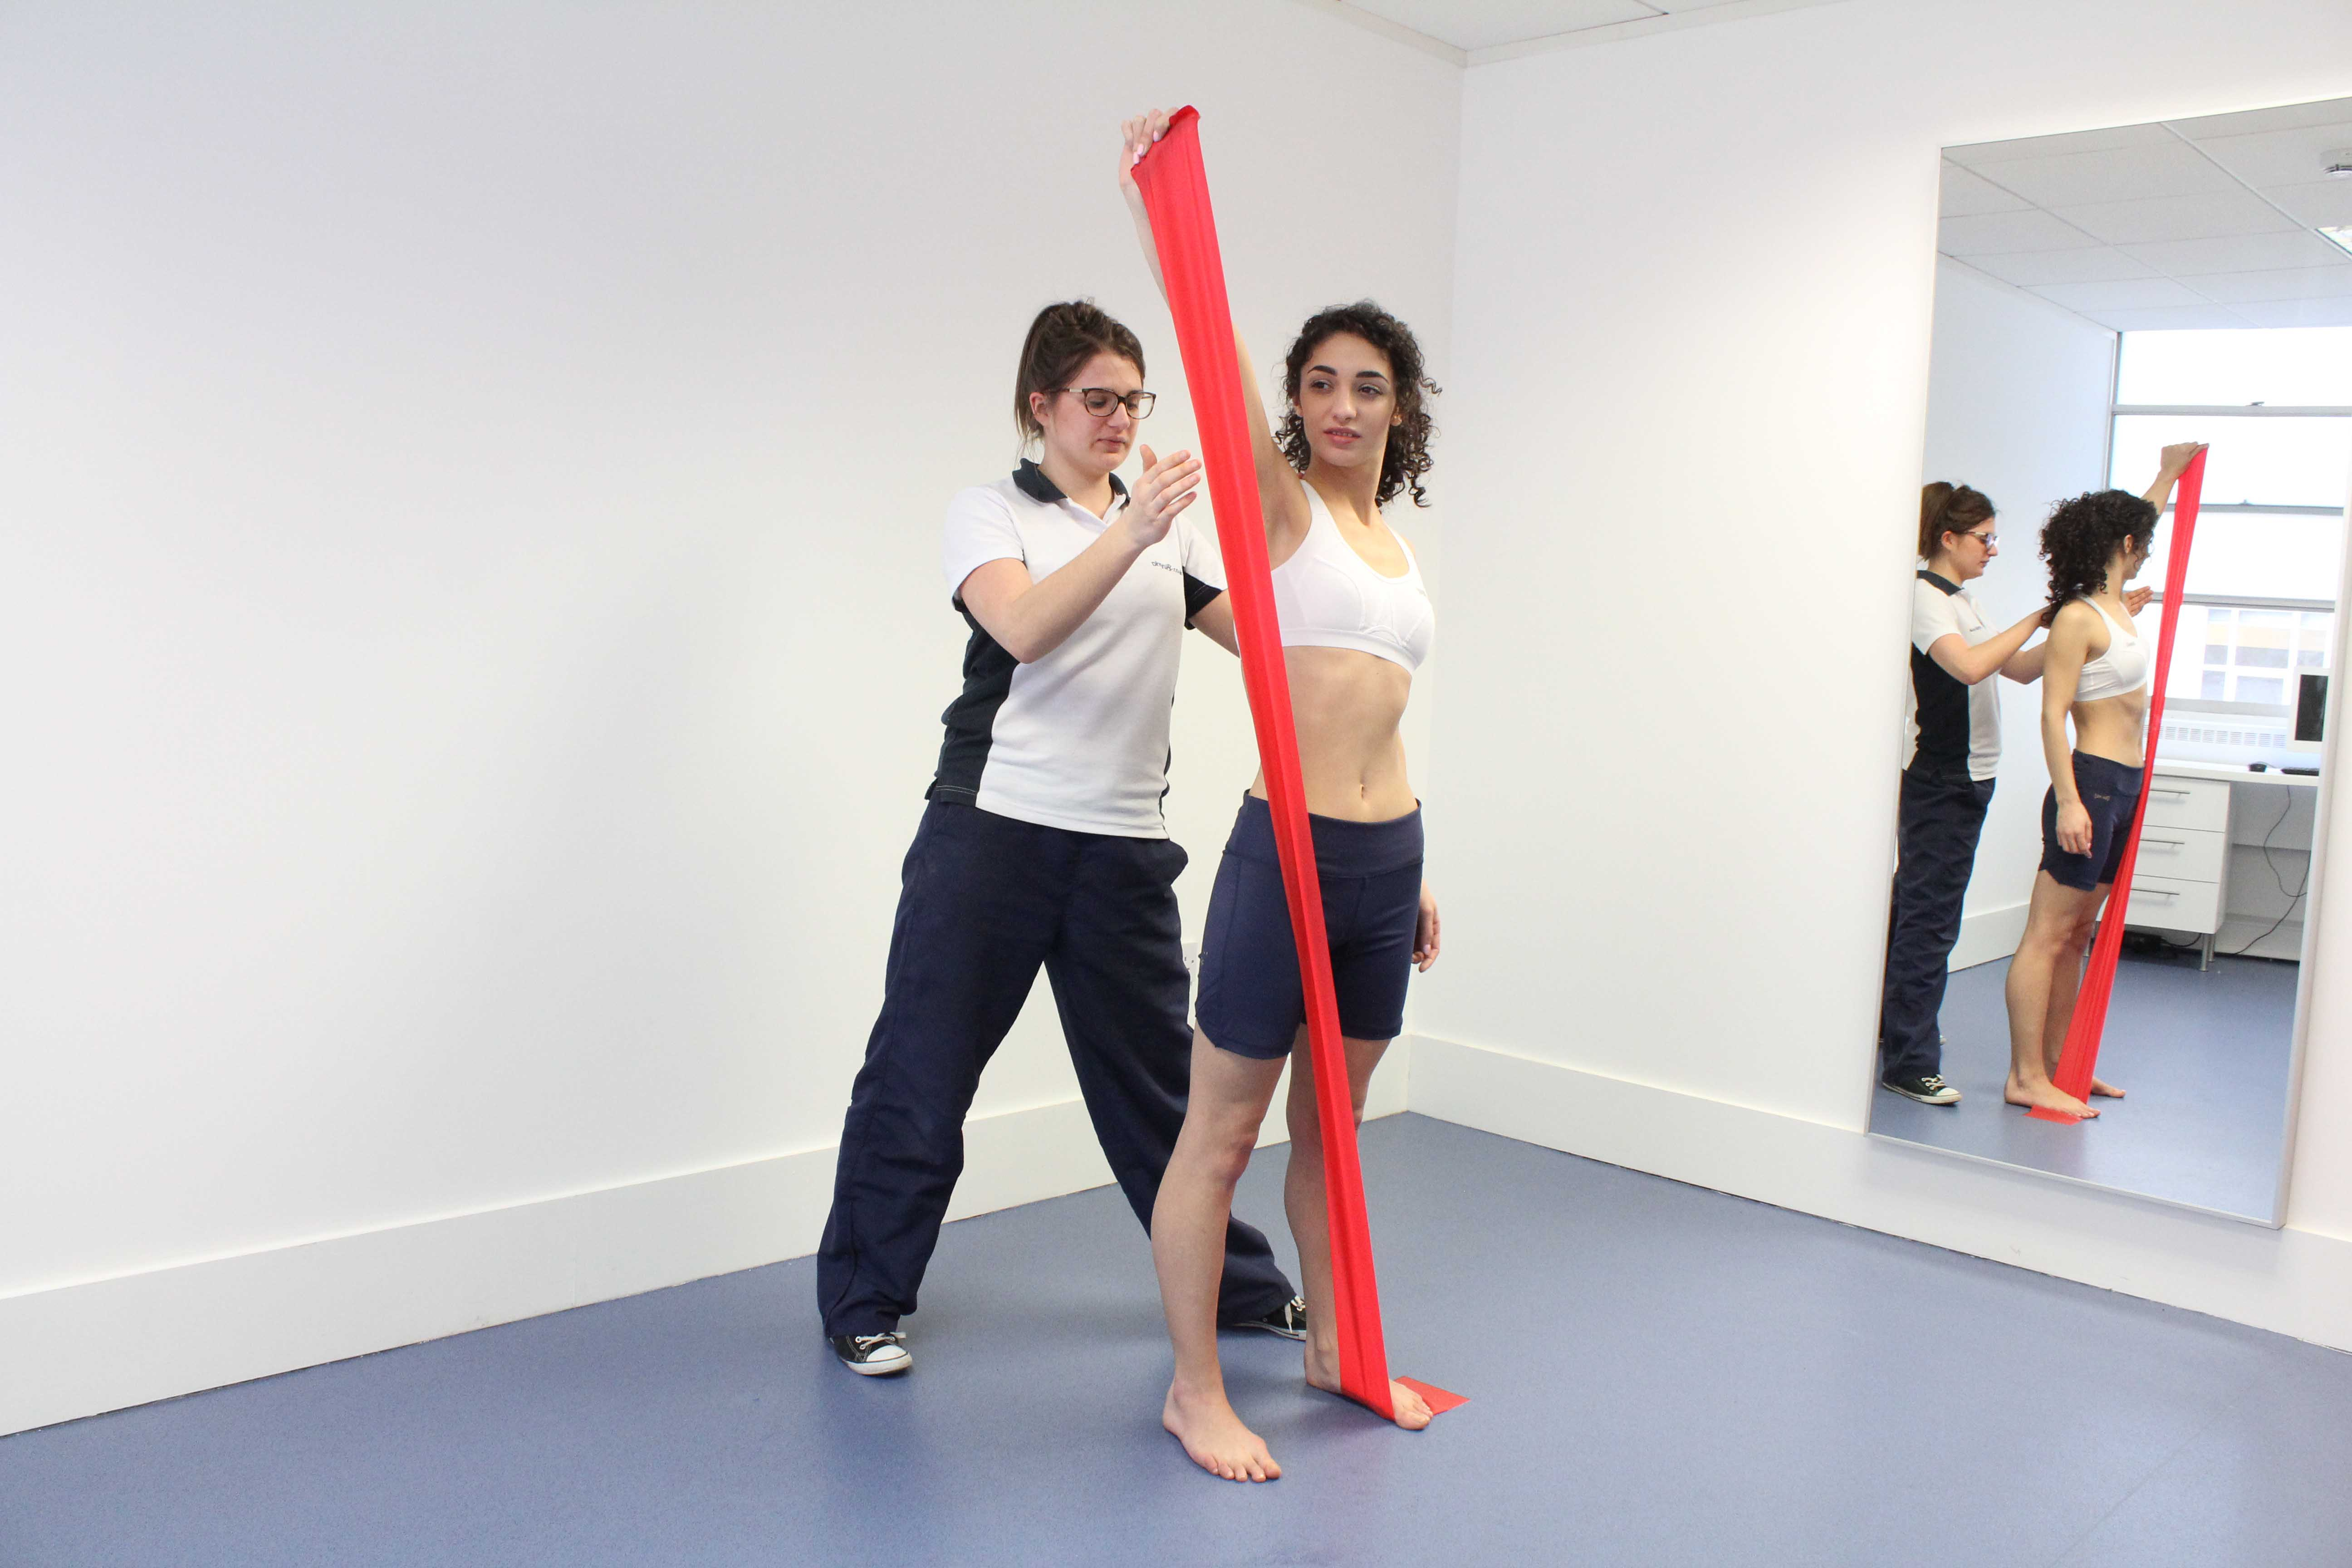 functional lower limb strengthening exercises supervised by an experienced physiotherapist